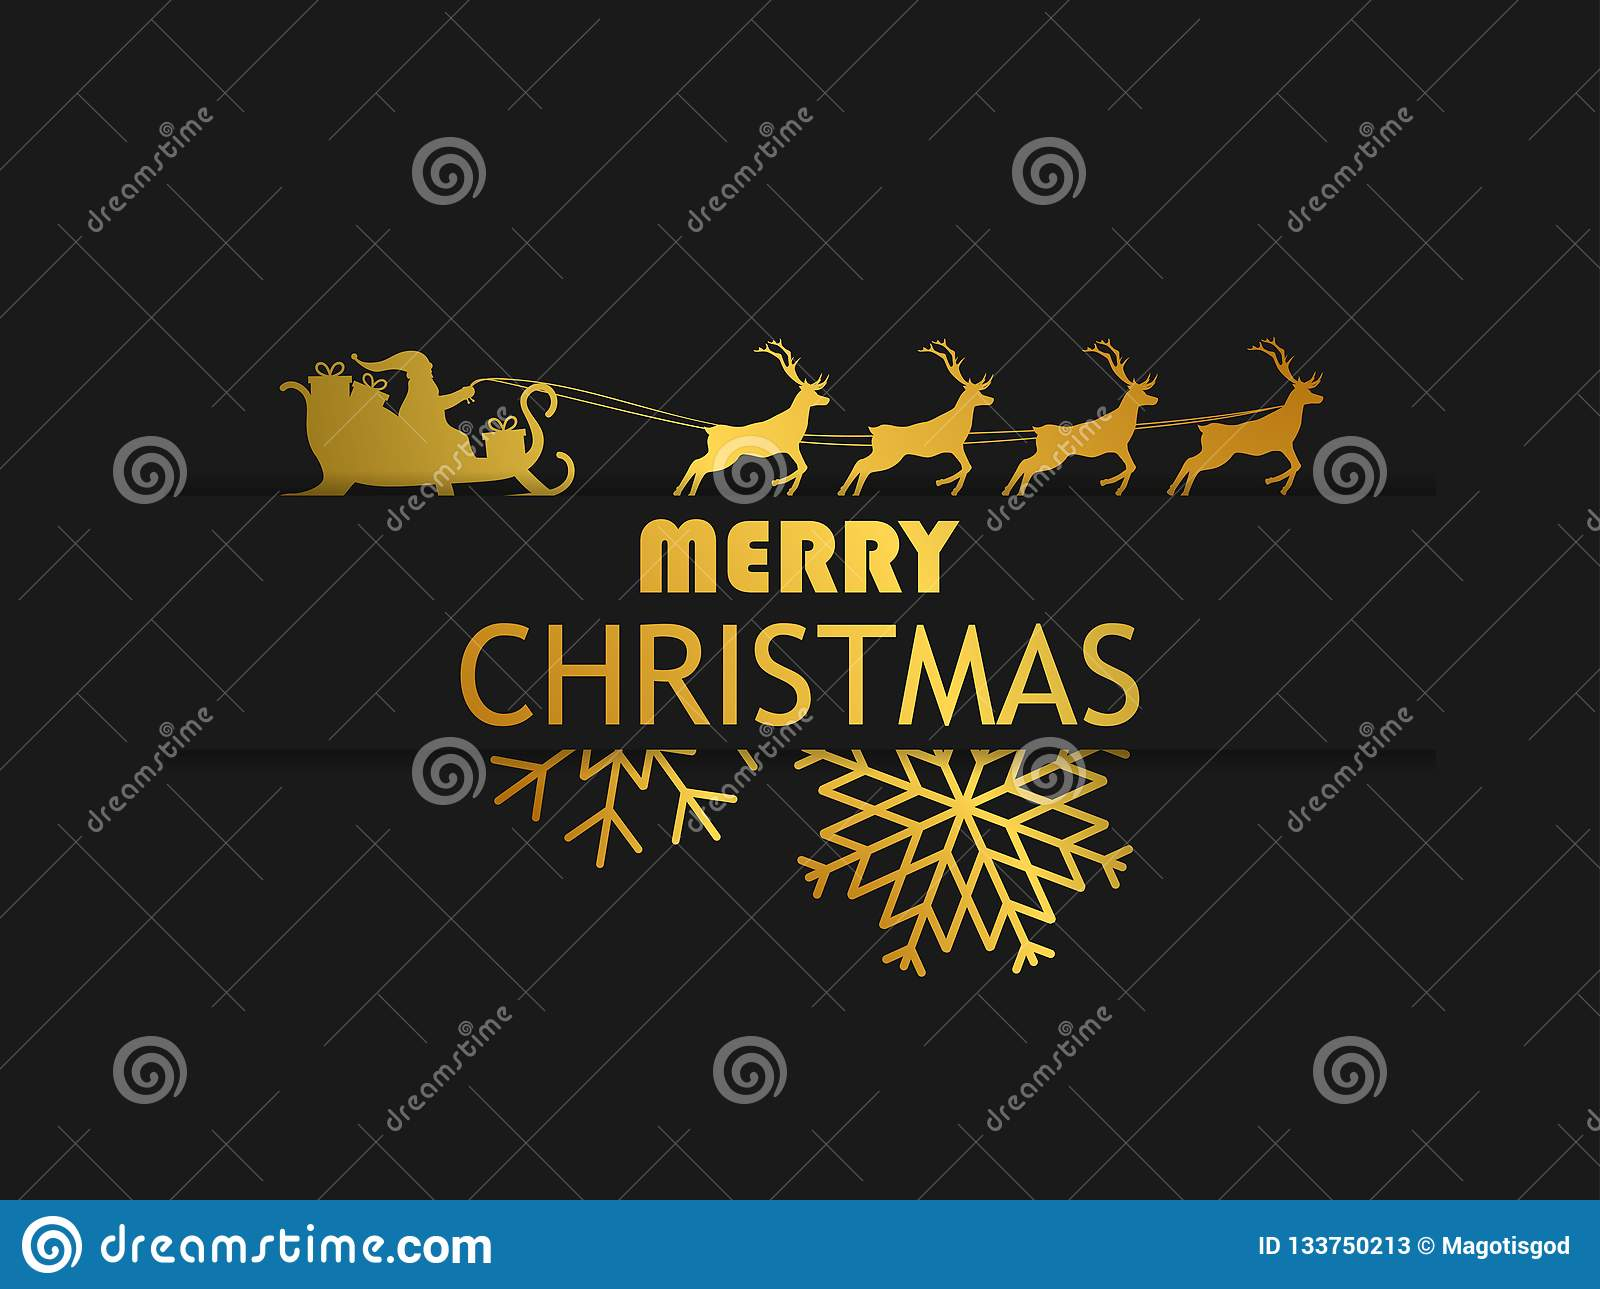 Merry Christmas. Santa Claus in a sleigh with reindeer on black background. Greeting card design template with golden gradient